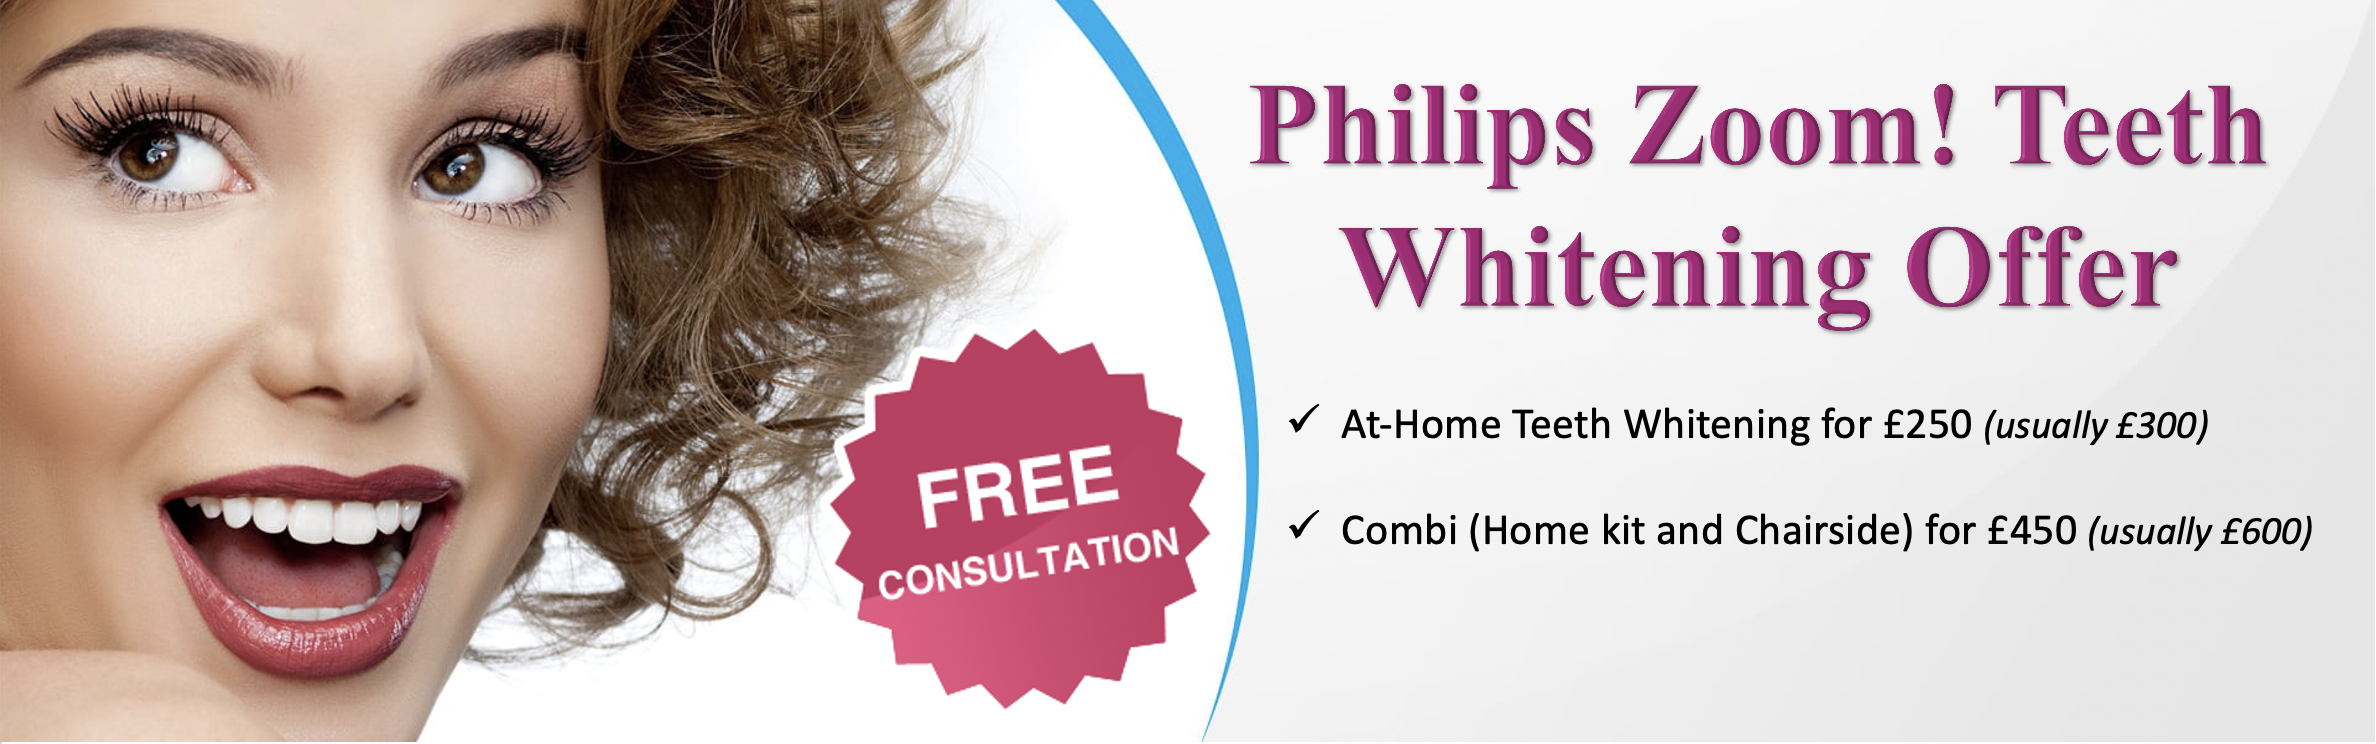 Philips Zoom Teeth Whitening in London - NW1 Dental Care